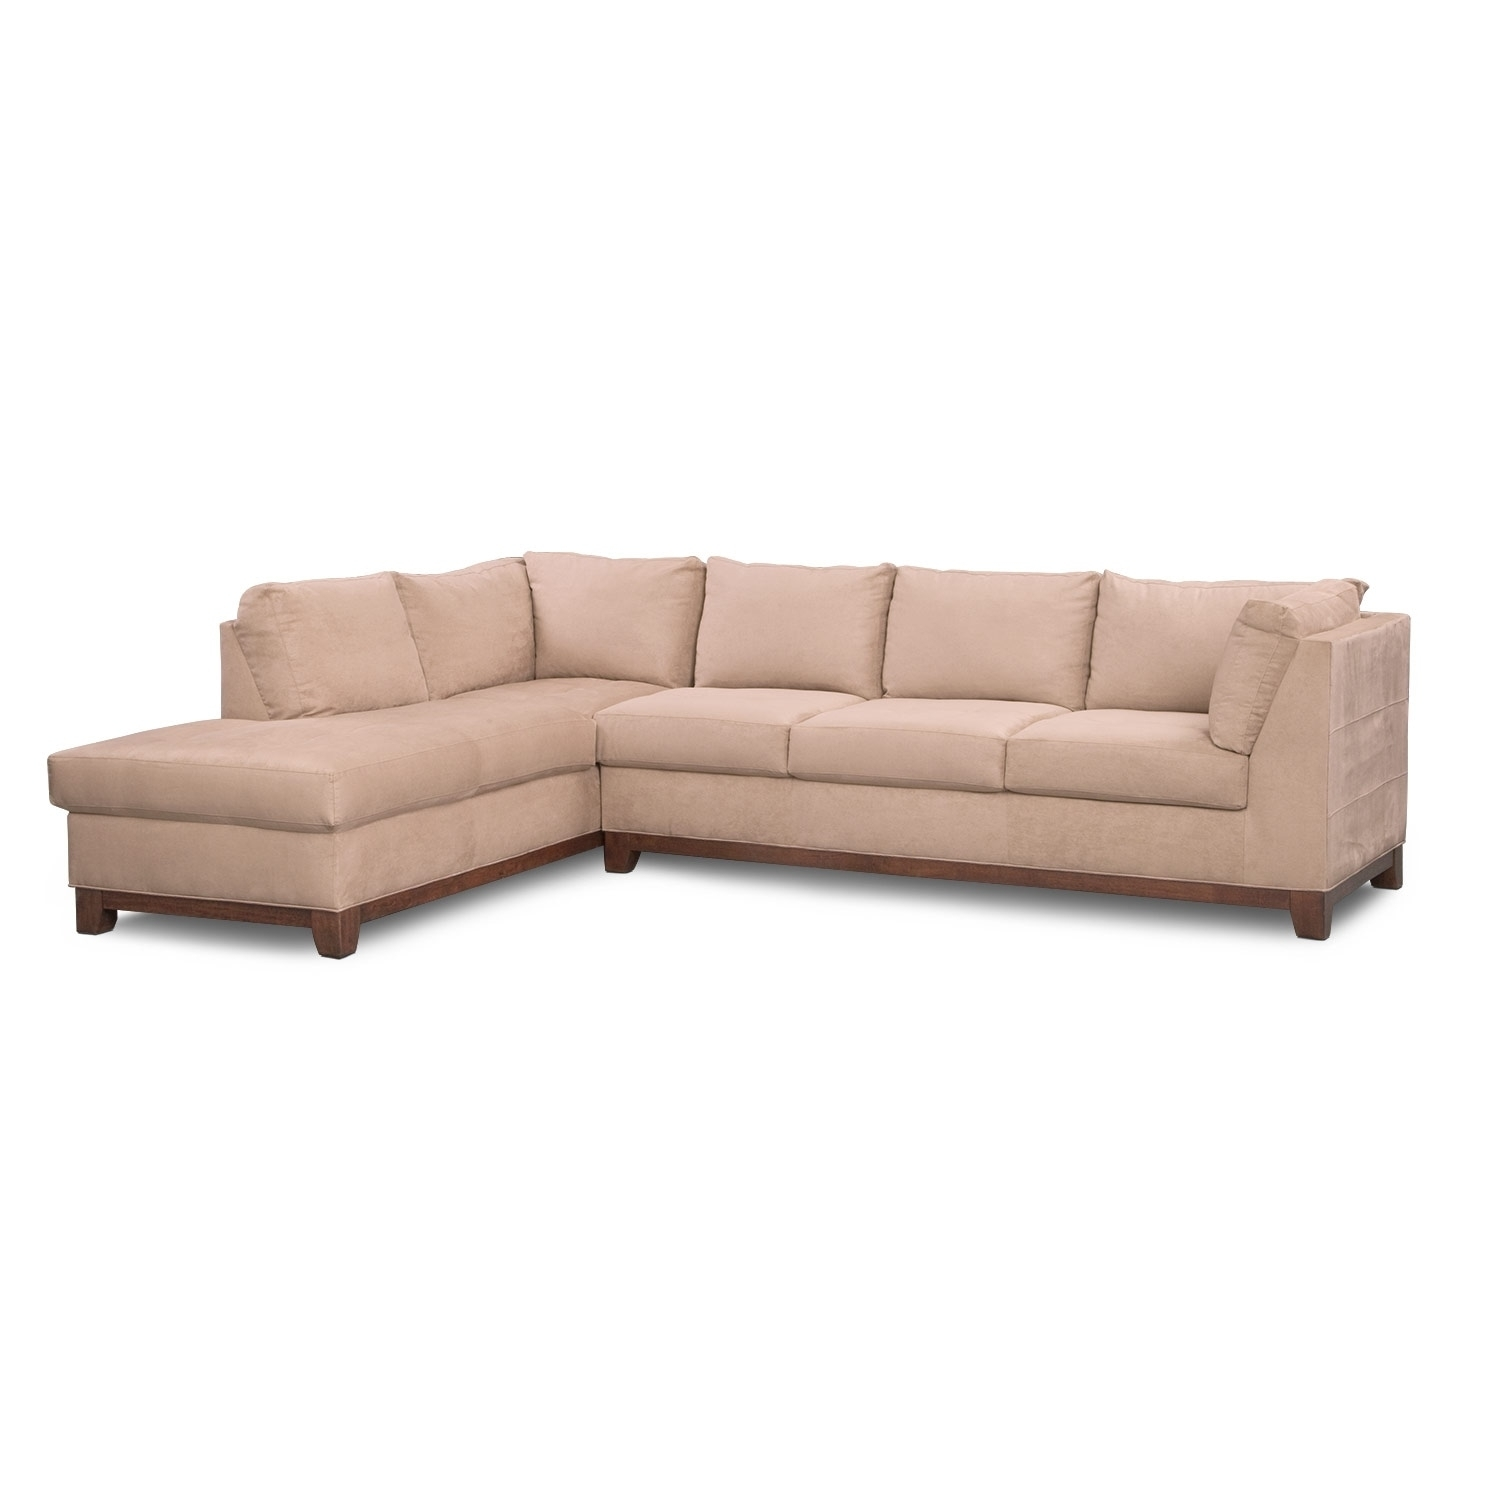 Soho 2 Piece Sectional With Left Facing Chaise – Cobblestone | Value Inside Arrowmask 2 Piece Sectionals With Sleeper & Right Facing Chaise (View 3 of 25)